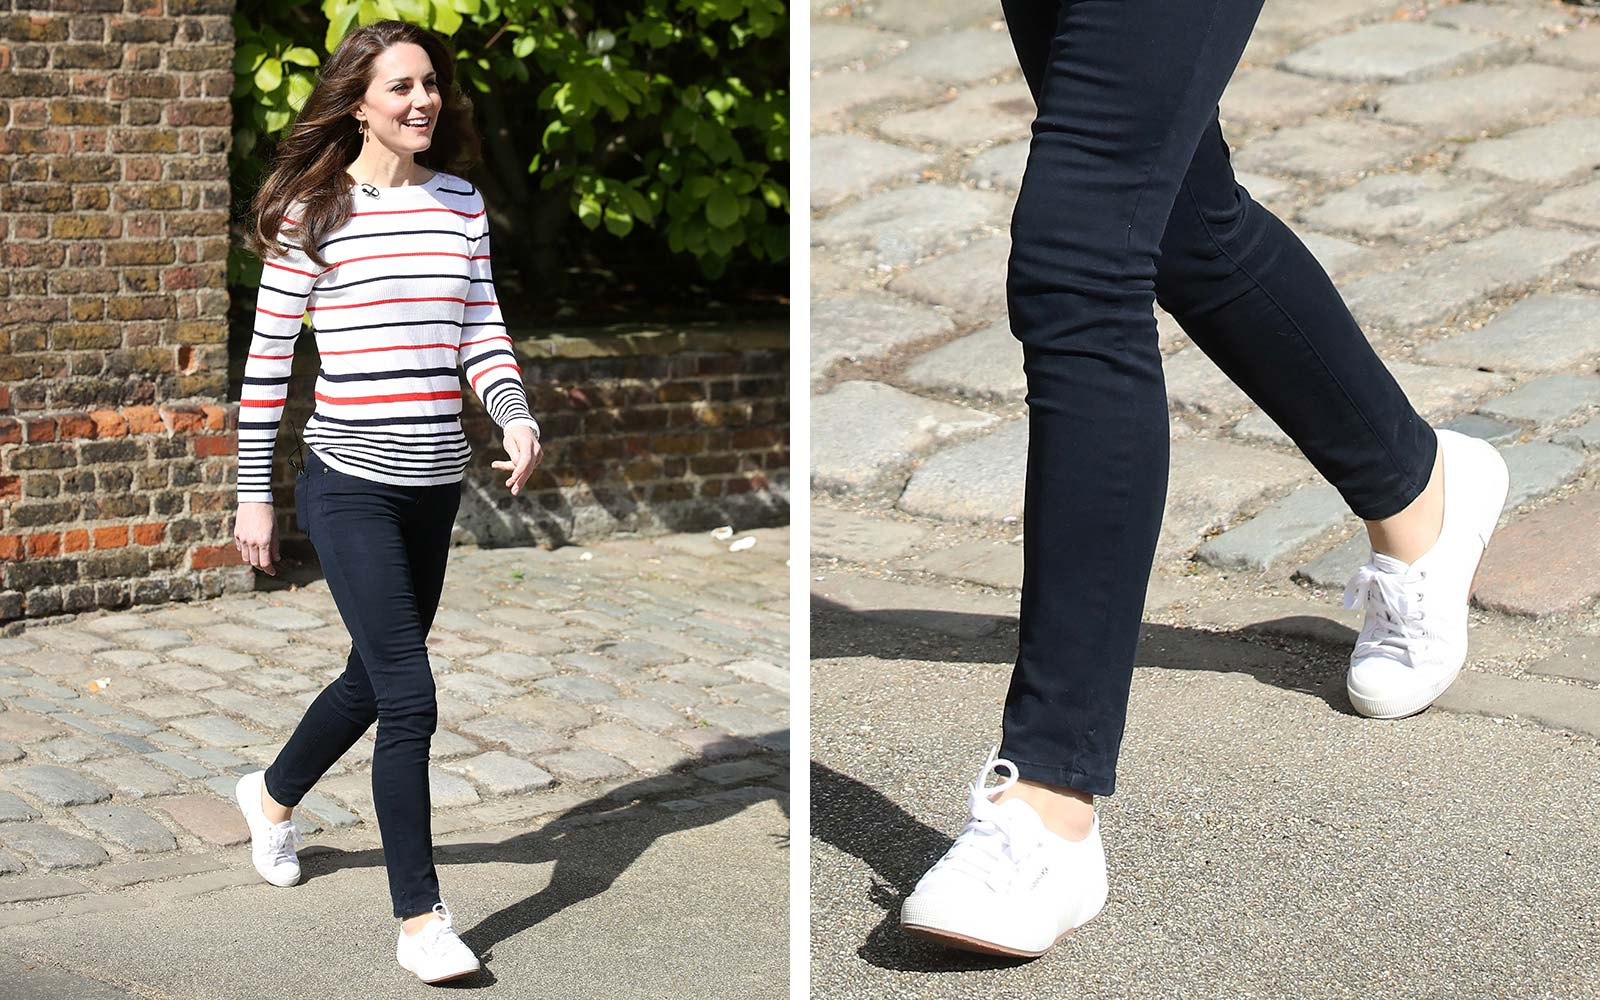 Kate Middleton Just Wore the $65 Sneakers You've Been Looking For